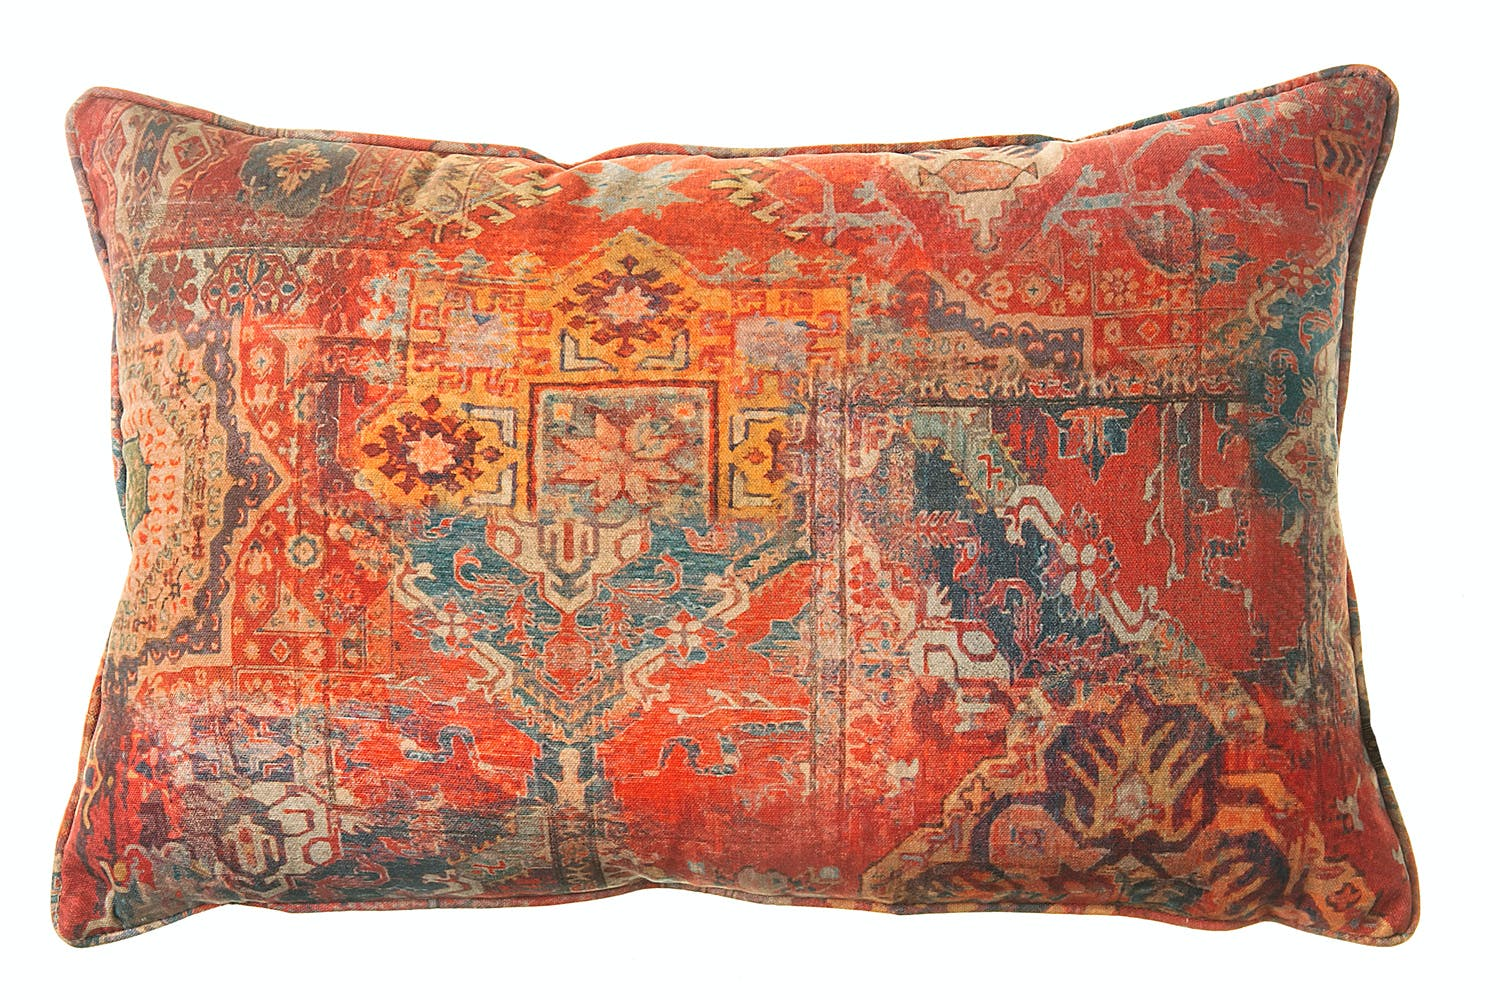 Kabash Cushion 40x60cm Ireland